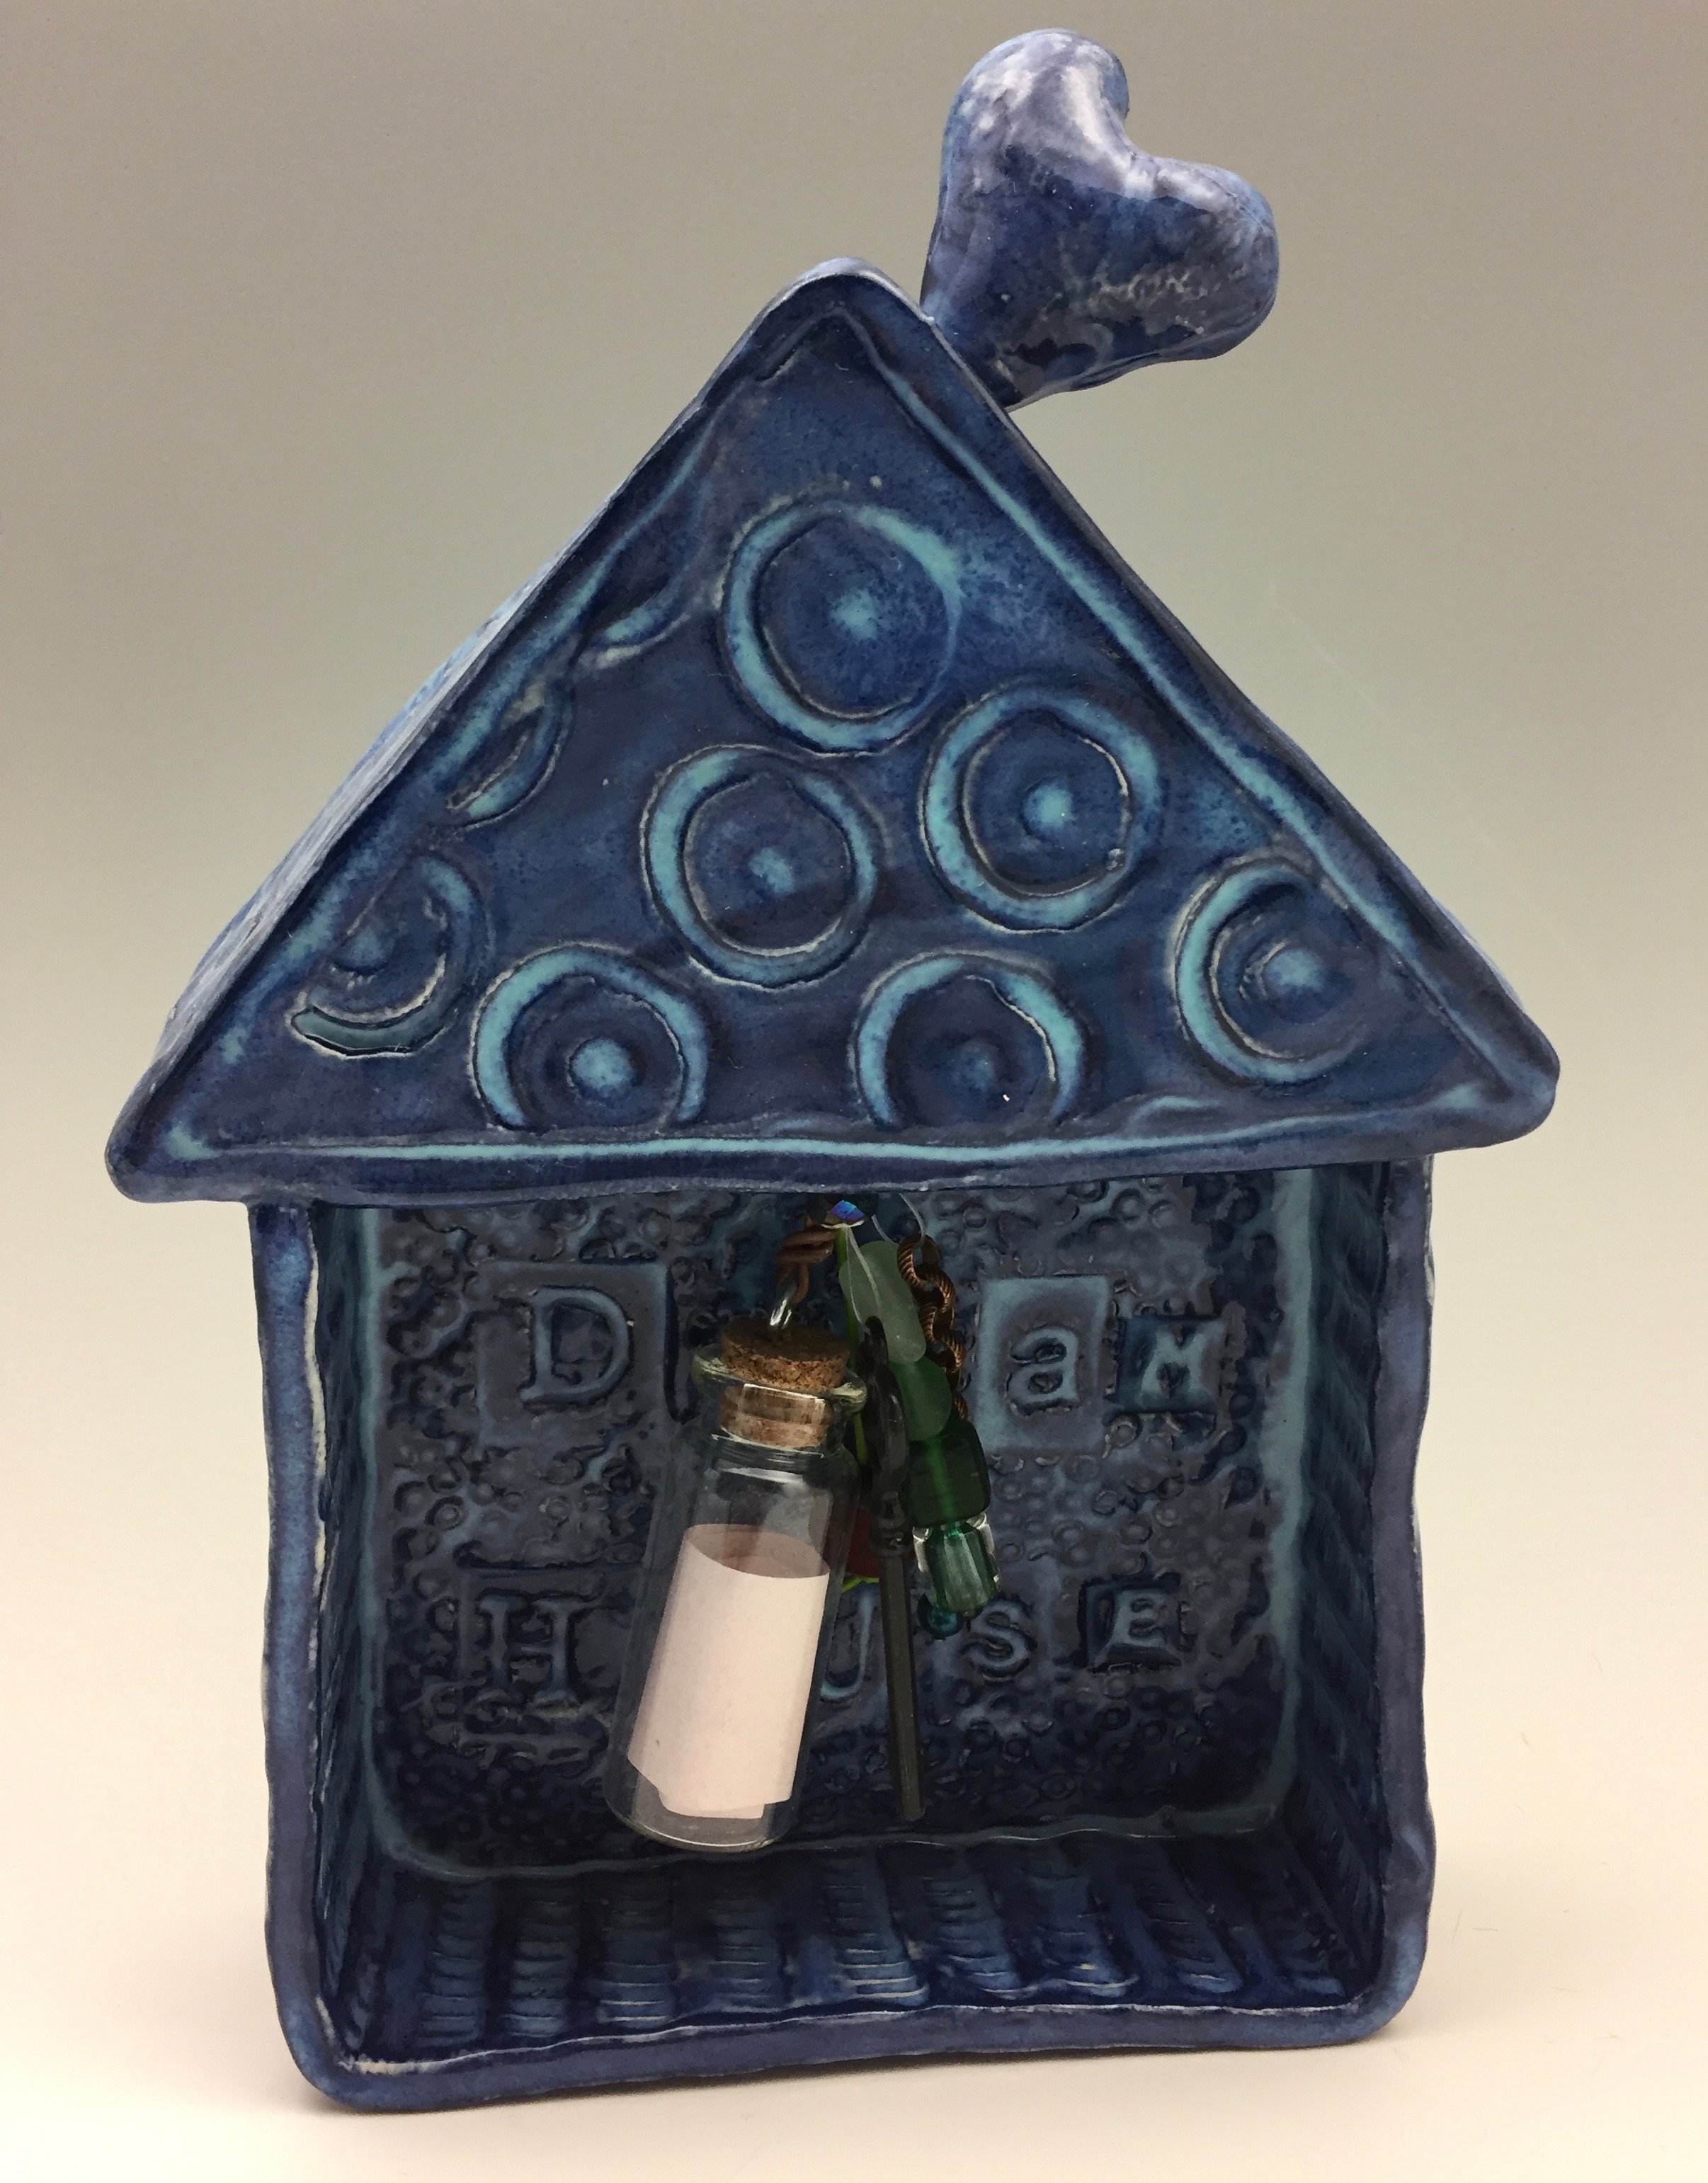 If you're looking for a dream home, here's your answer. Write down all your hopes and wishes and place them inside the glass vial of this small decorative habitat. Stating your intentions often helps make them come true for you! Want to own one or gift it to a friend? Click on the photo.